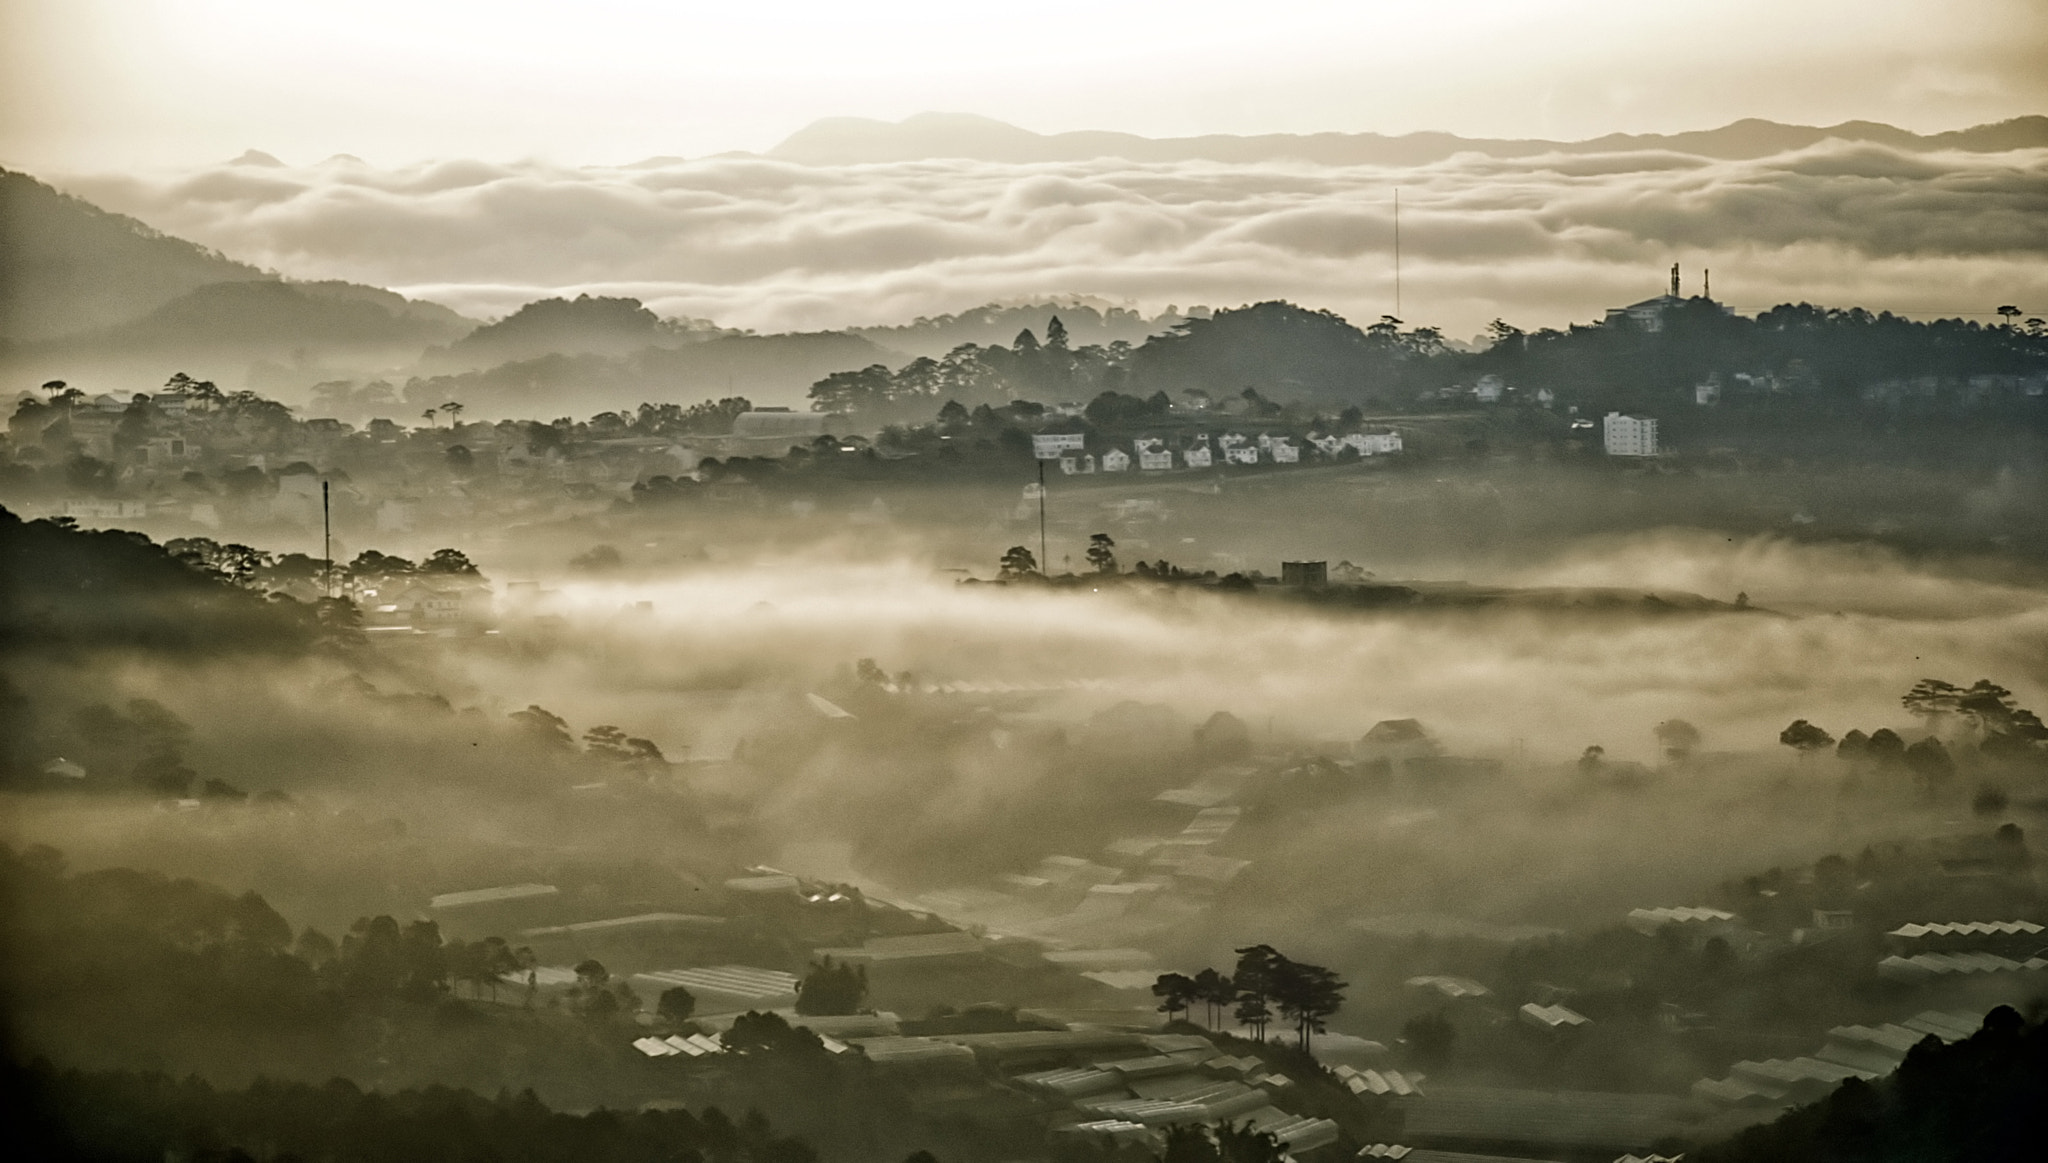 Photograph Da Lat in the fog . by Thachhan on 500px